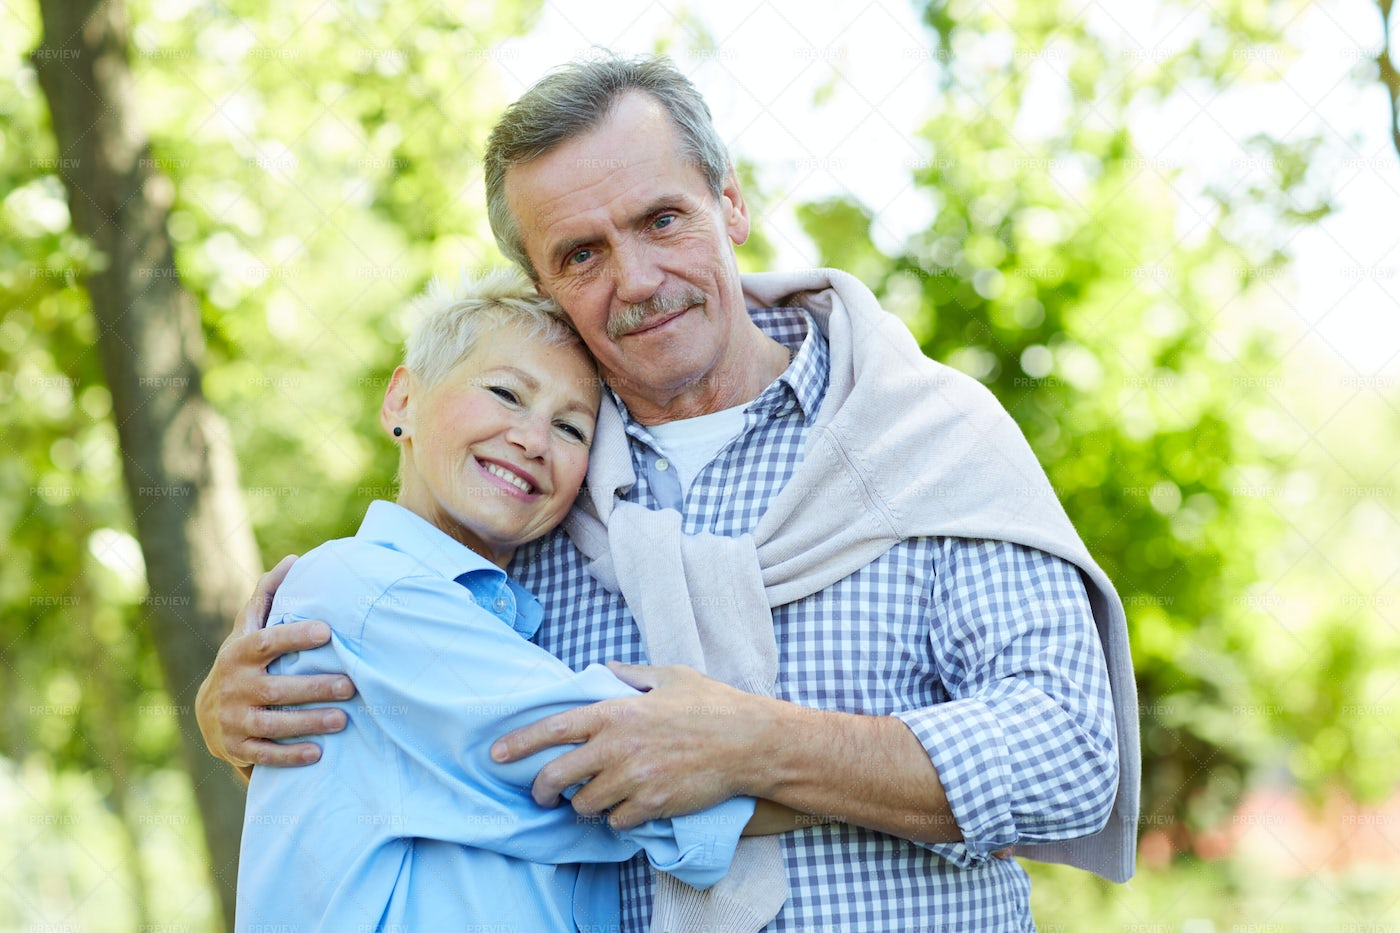 Happy Senior Couple Embracing In...: Stock Photos